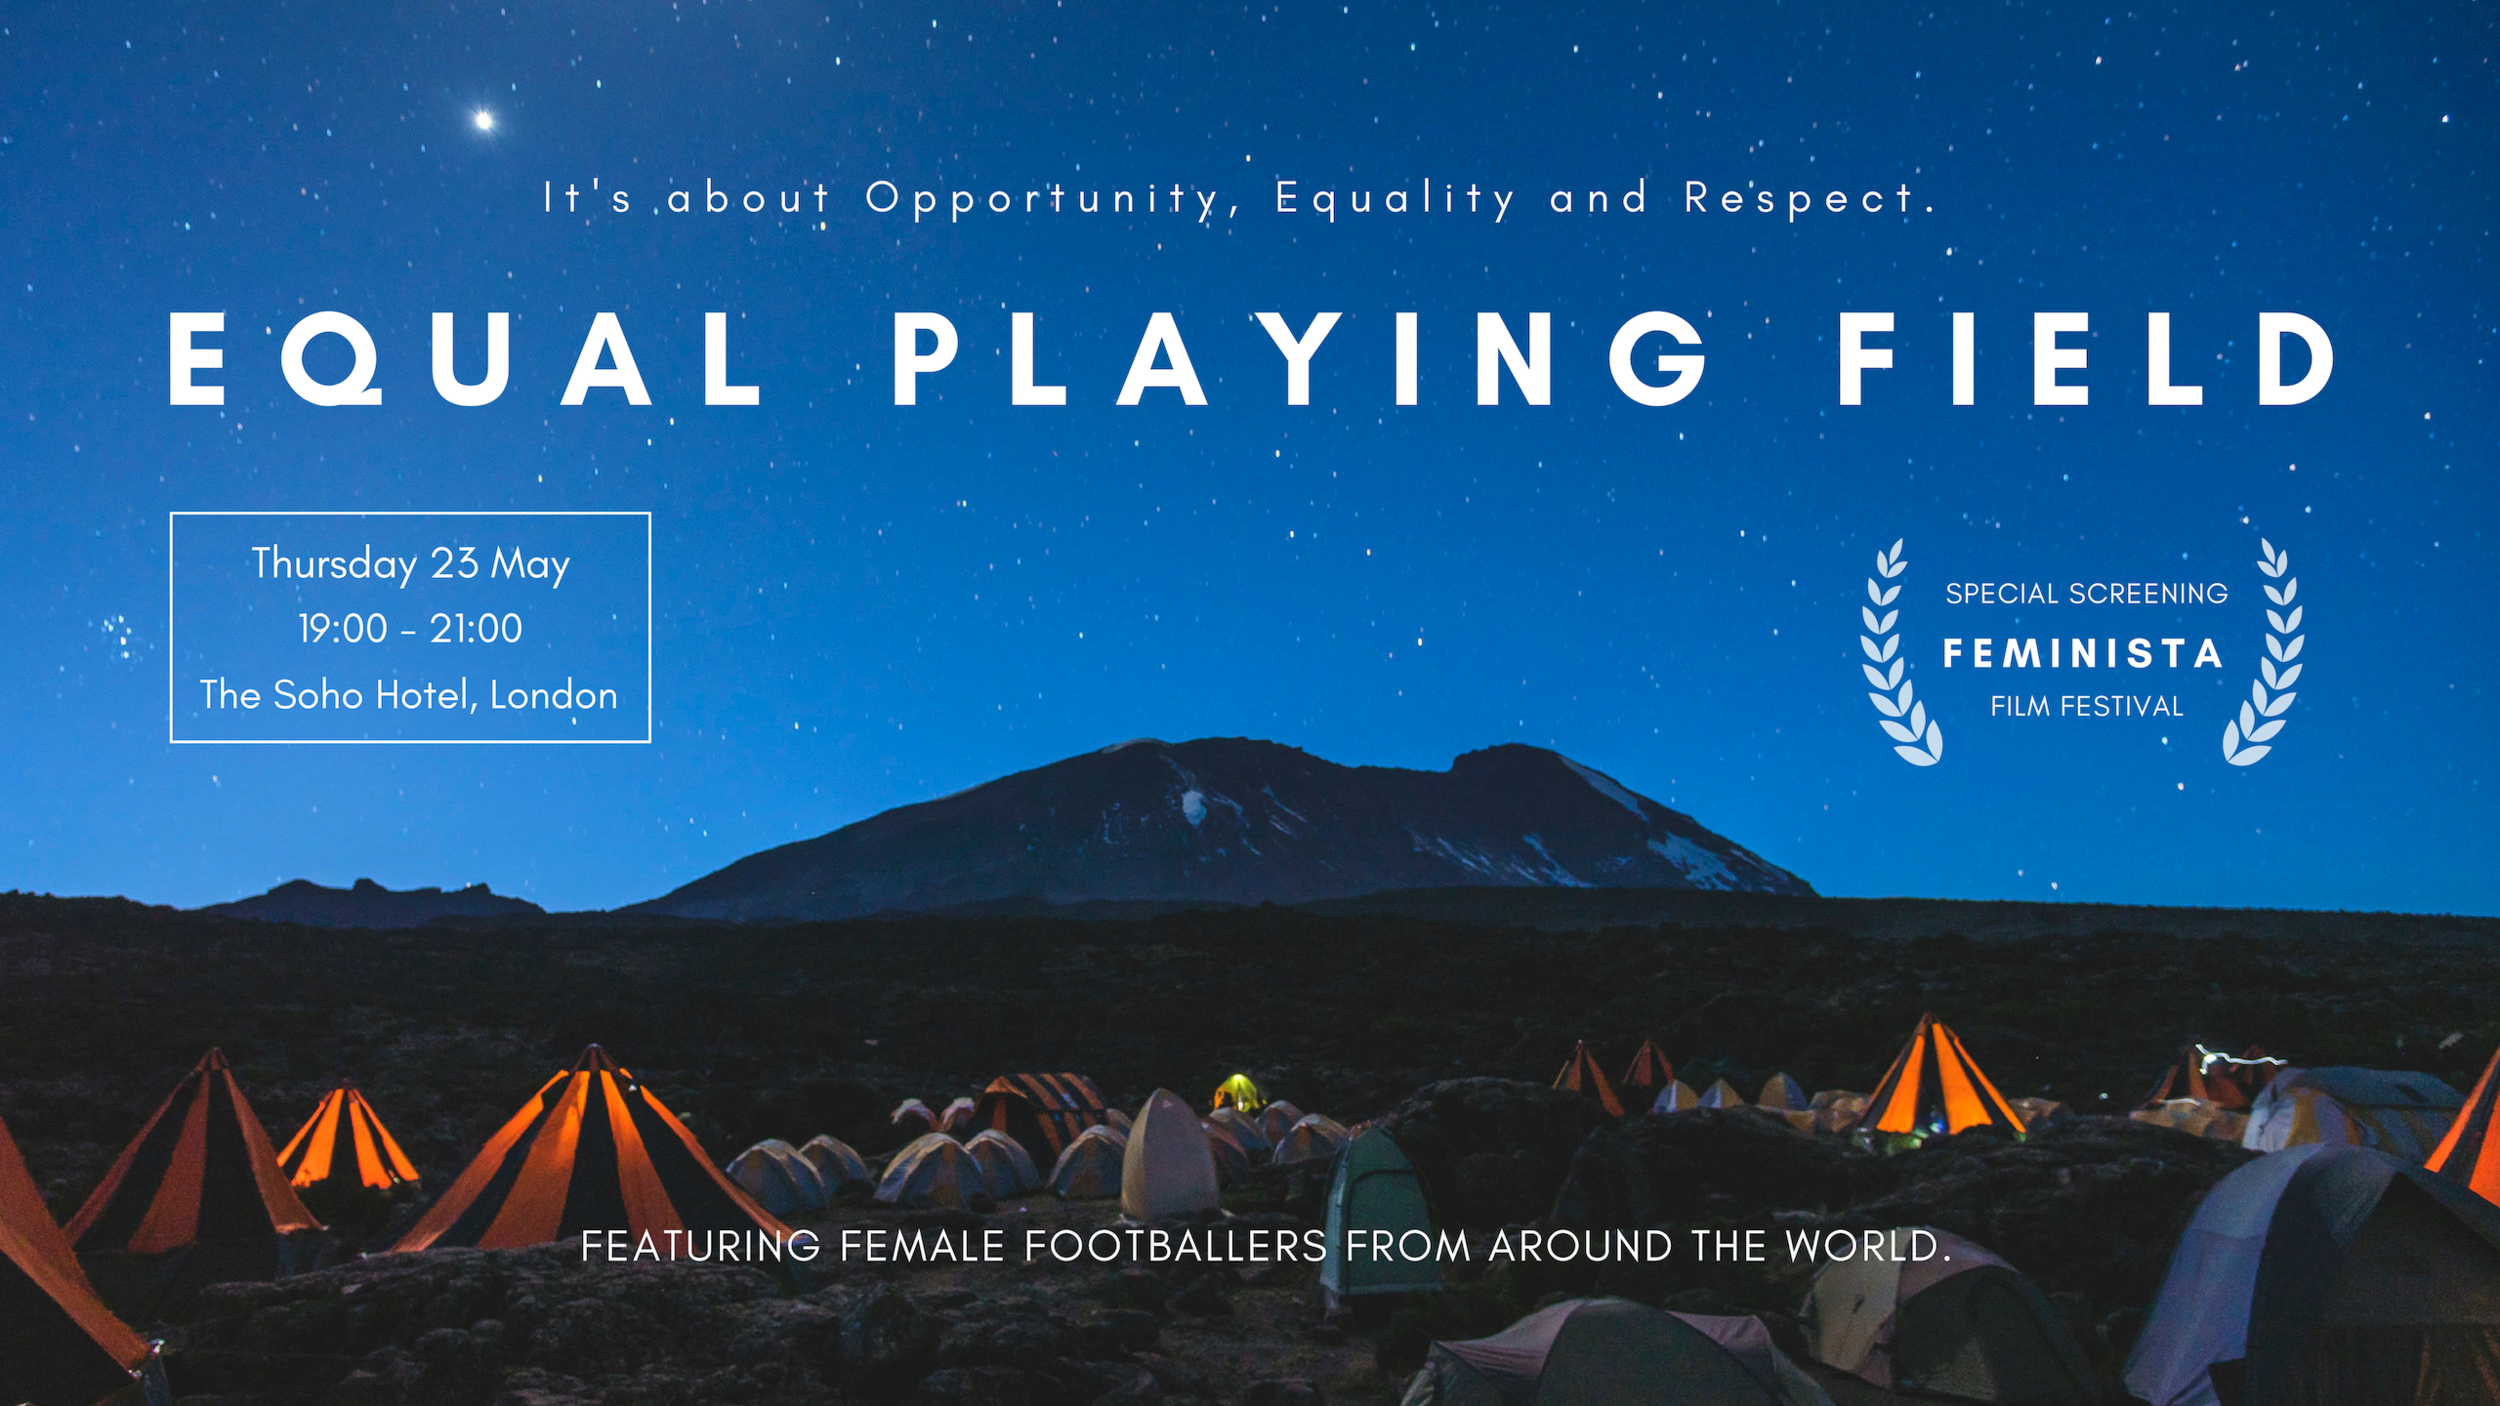 EQUAL PLAYING FIELD - FEMINISTA FILM FESTIVAL SPECIAL SCREENING